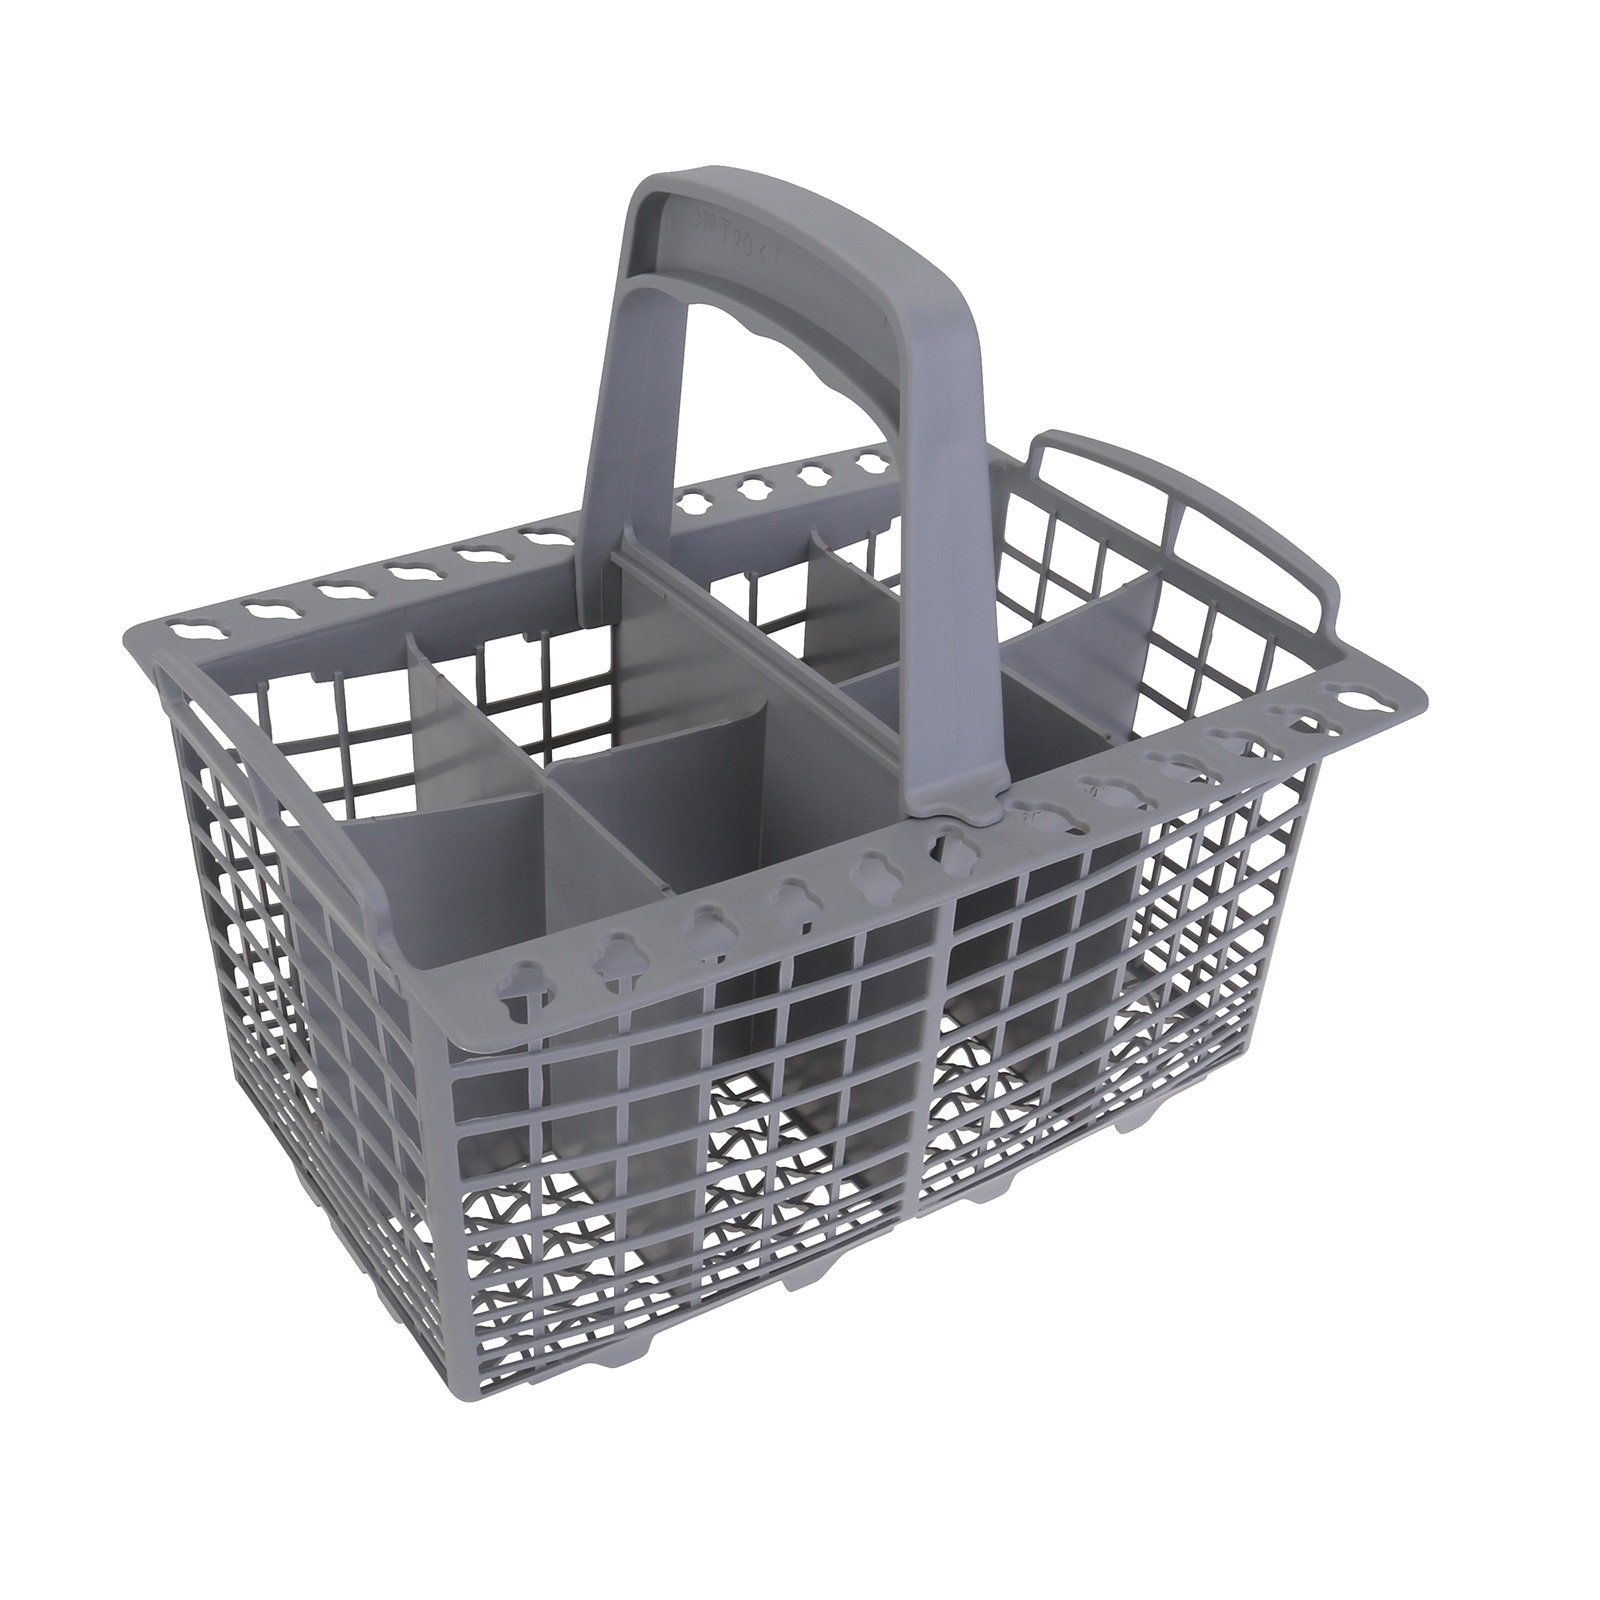 Qualtex Grey Dishwasher Cutlery Silverware Basket For Kenmore Whirpool Bosch Maytag KitchenAid Maytag Samsung AMANS GE 9'' Long x 5'' Wide With Spoon Holder